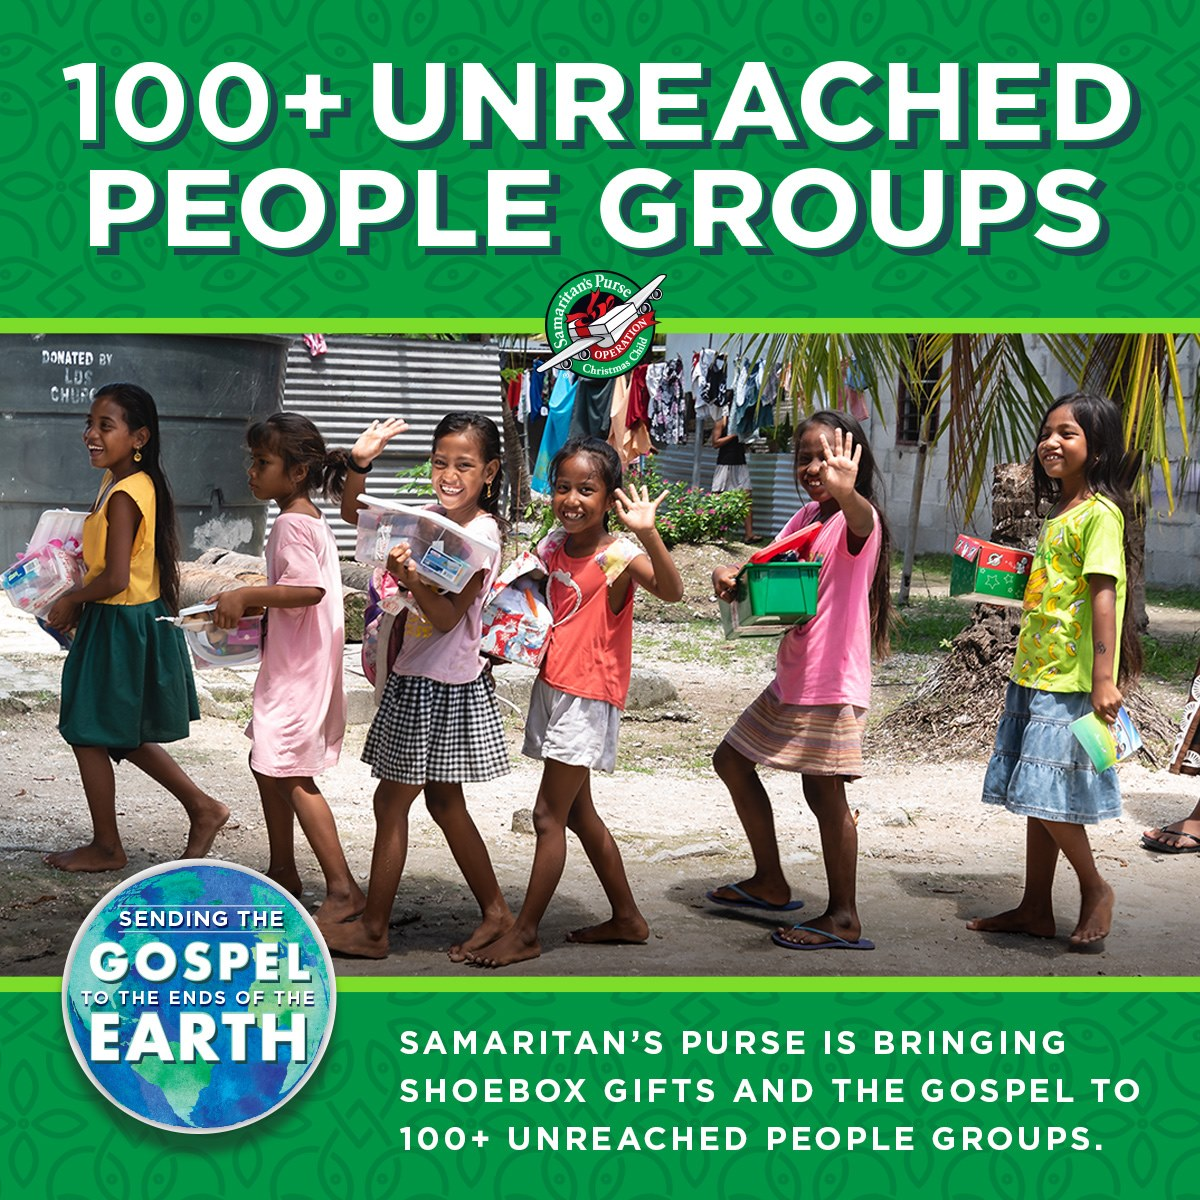 Christmas Shoe Boxes 2021 Operation Christmas Child On Twitter Operation Christmas Child Gift Filled Shoeboxes Go To Difficult Places From Densely Populated Inner Cities To Deserts And Jungles Local Churches Are Using These Gifts To Share The